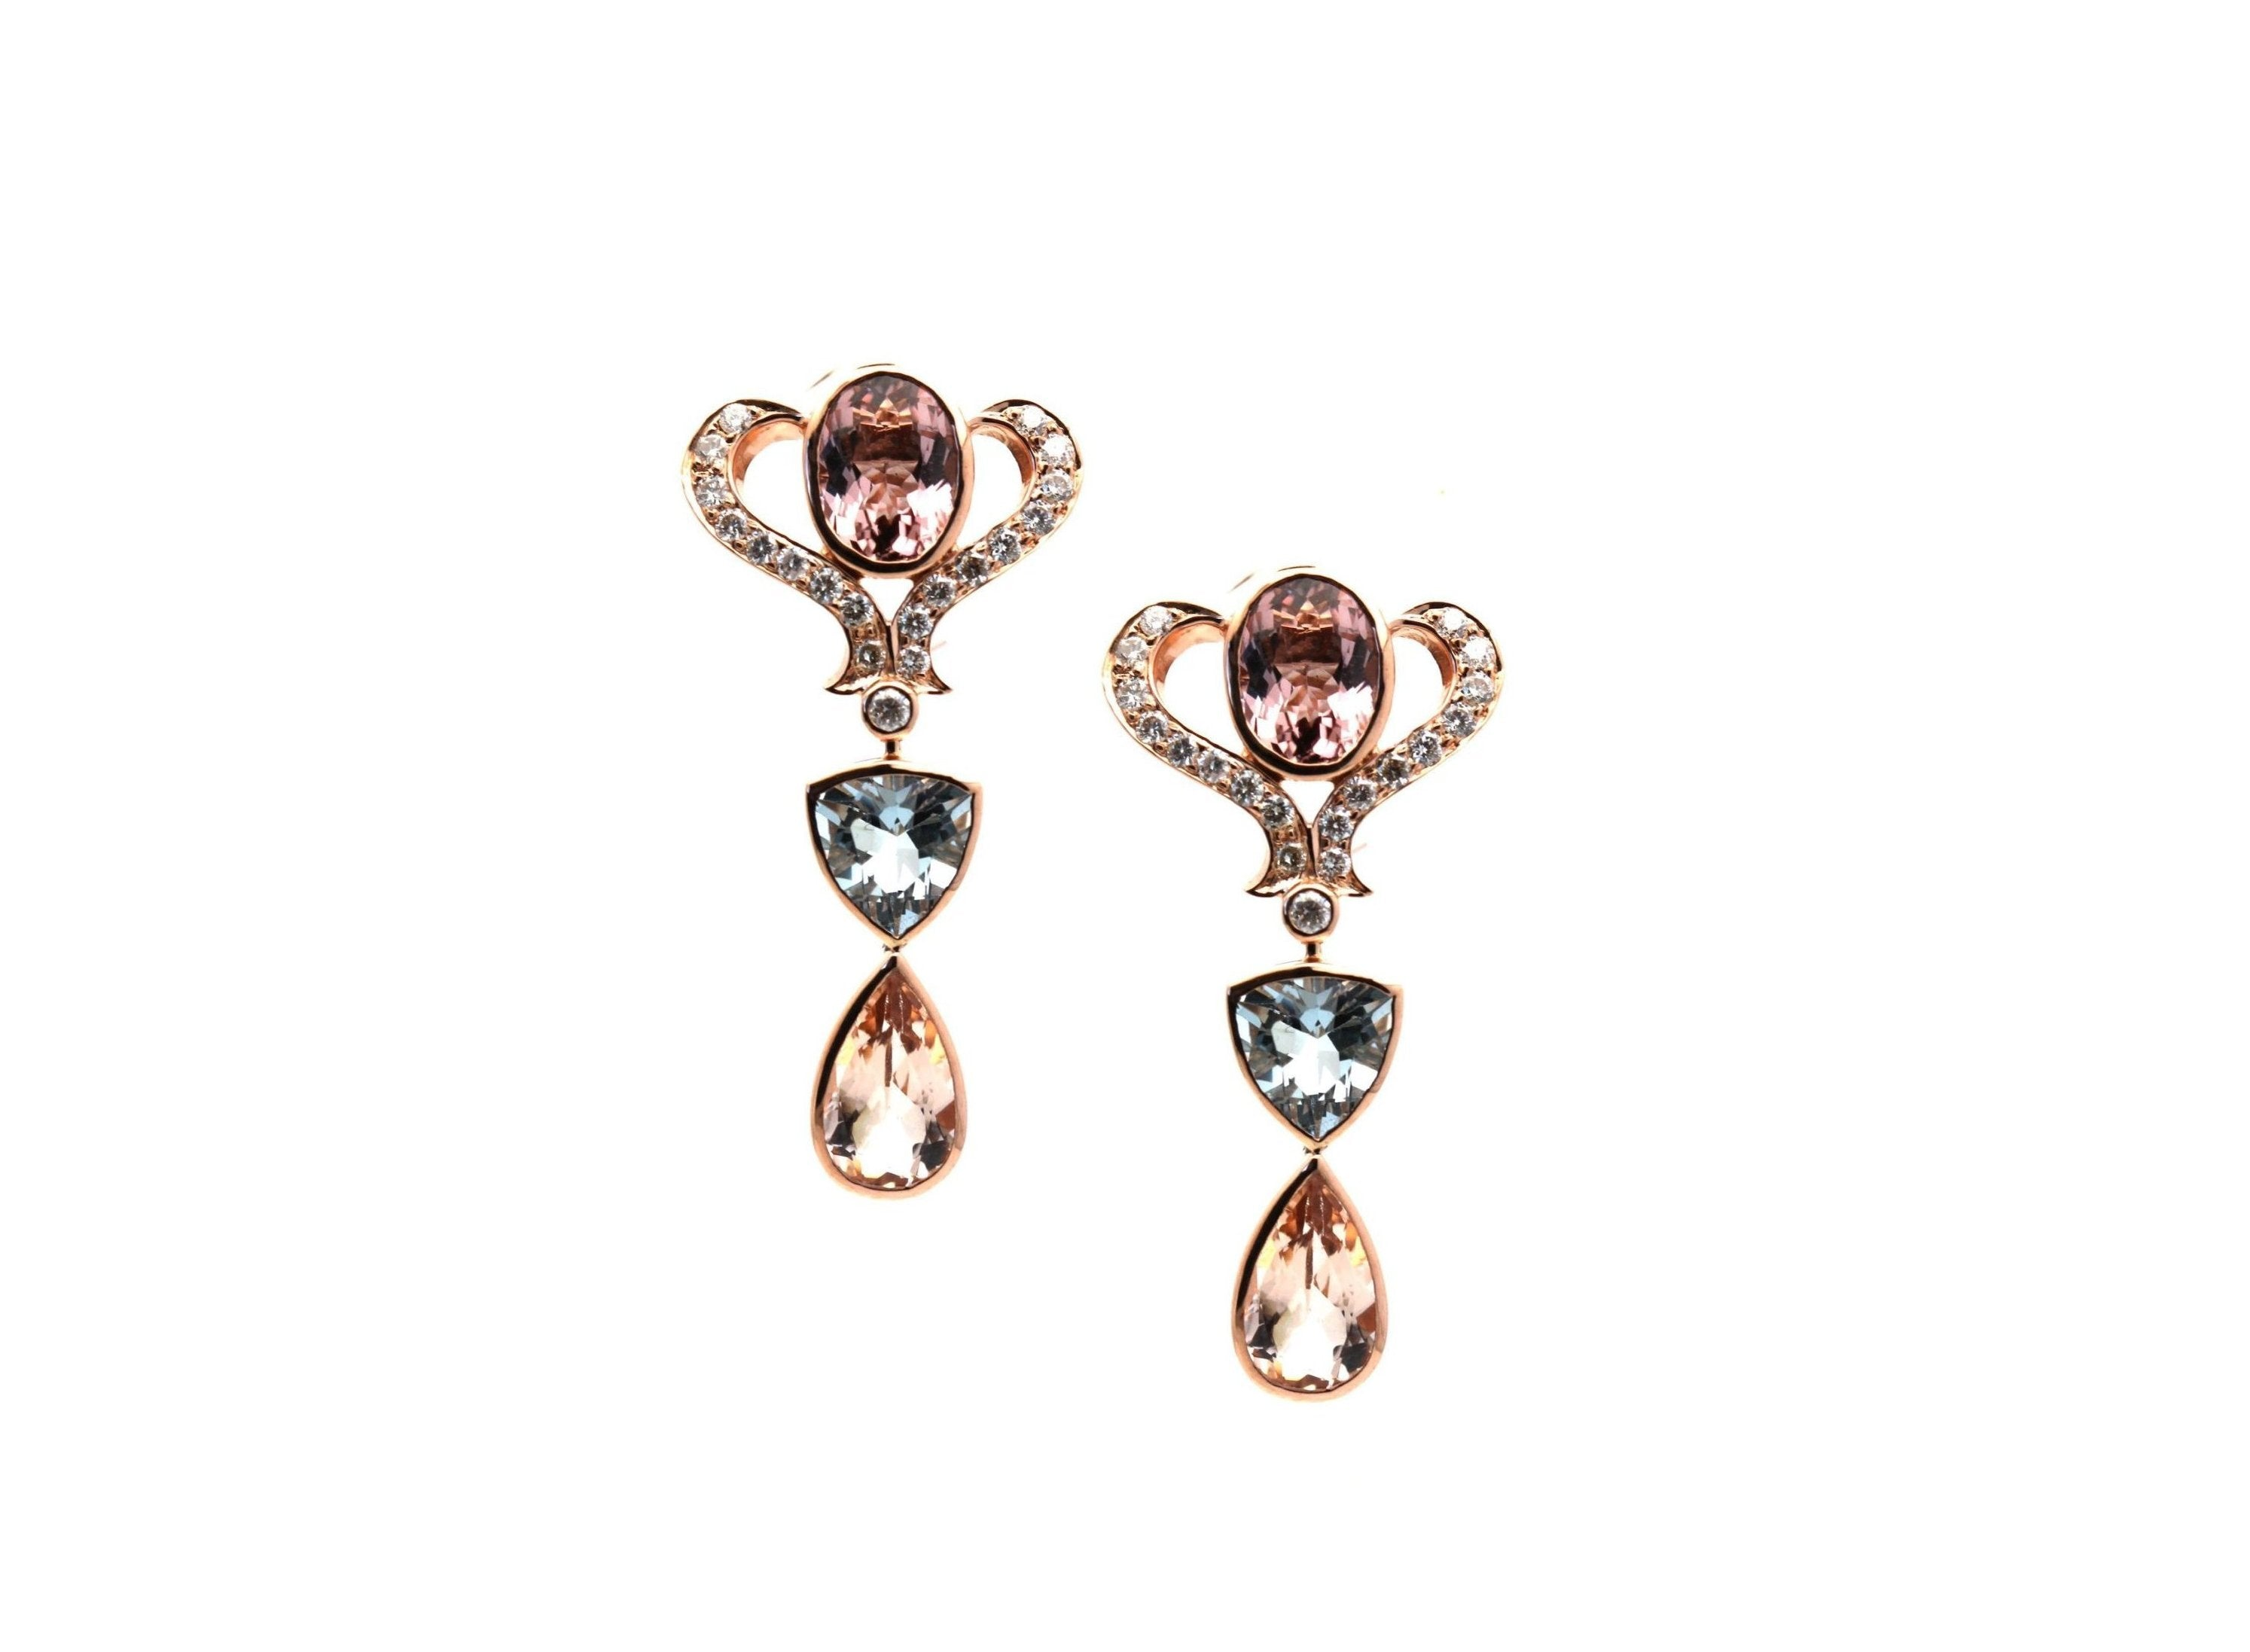 Aquamarine, Morganite & Diamond Earring In 18K Rose Gold